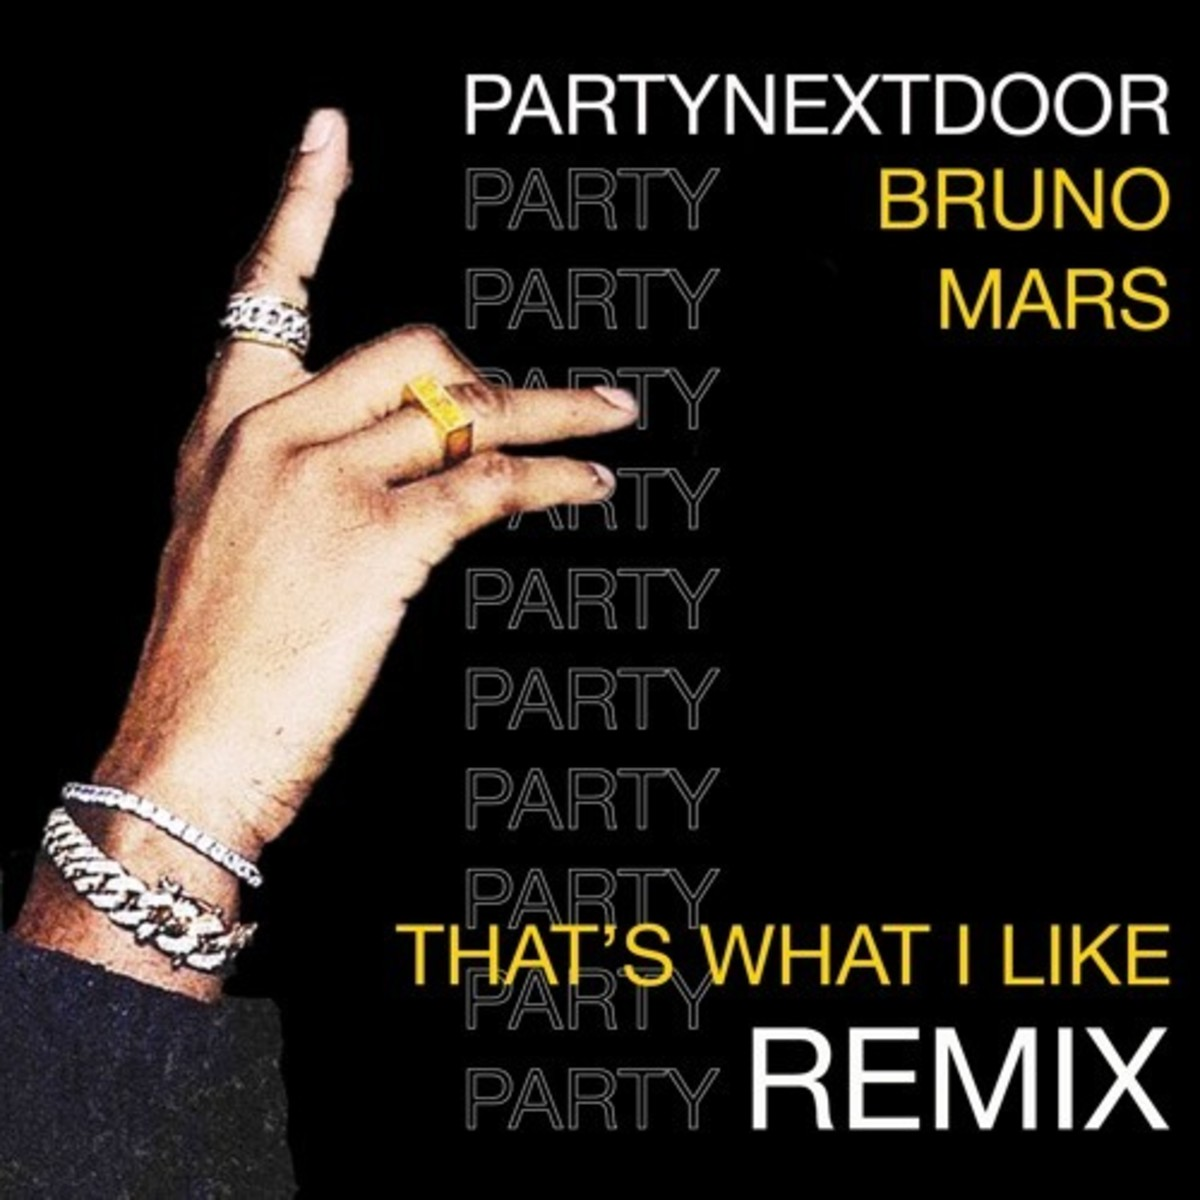 bruno-mars-thats-what-i-like-remix-2.jpg